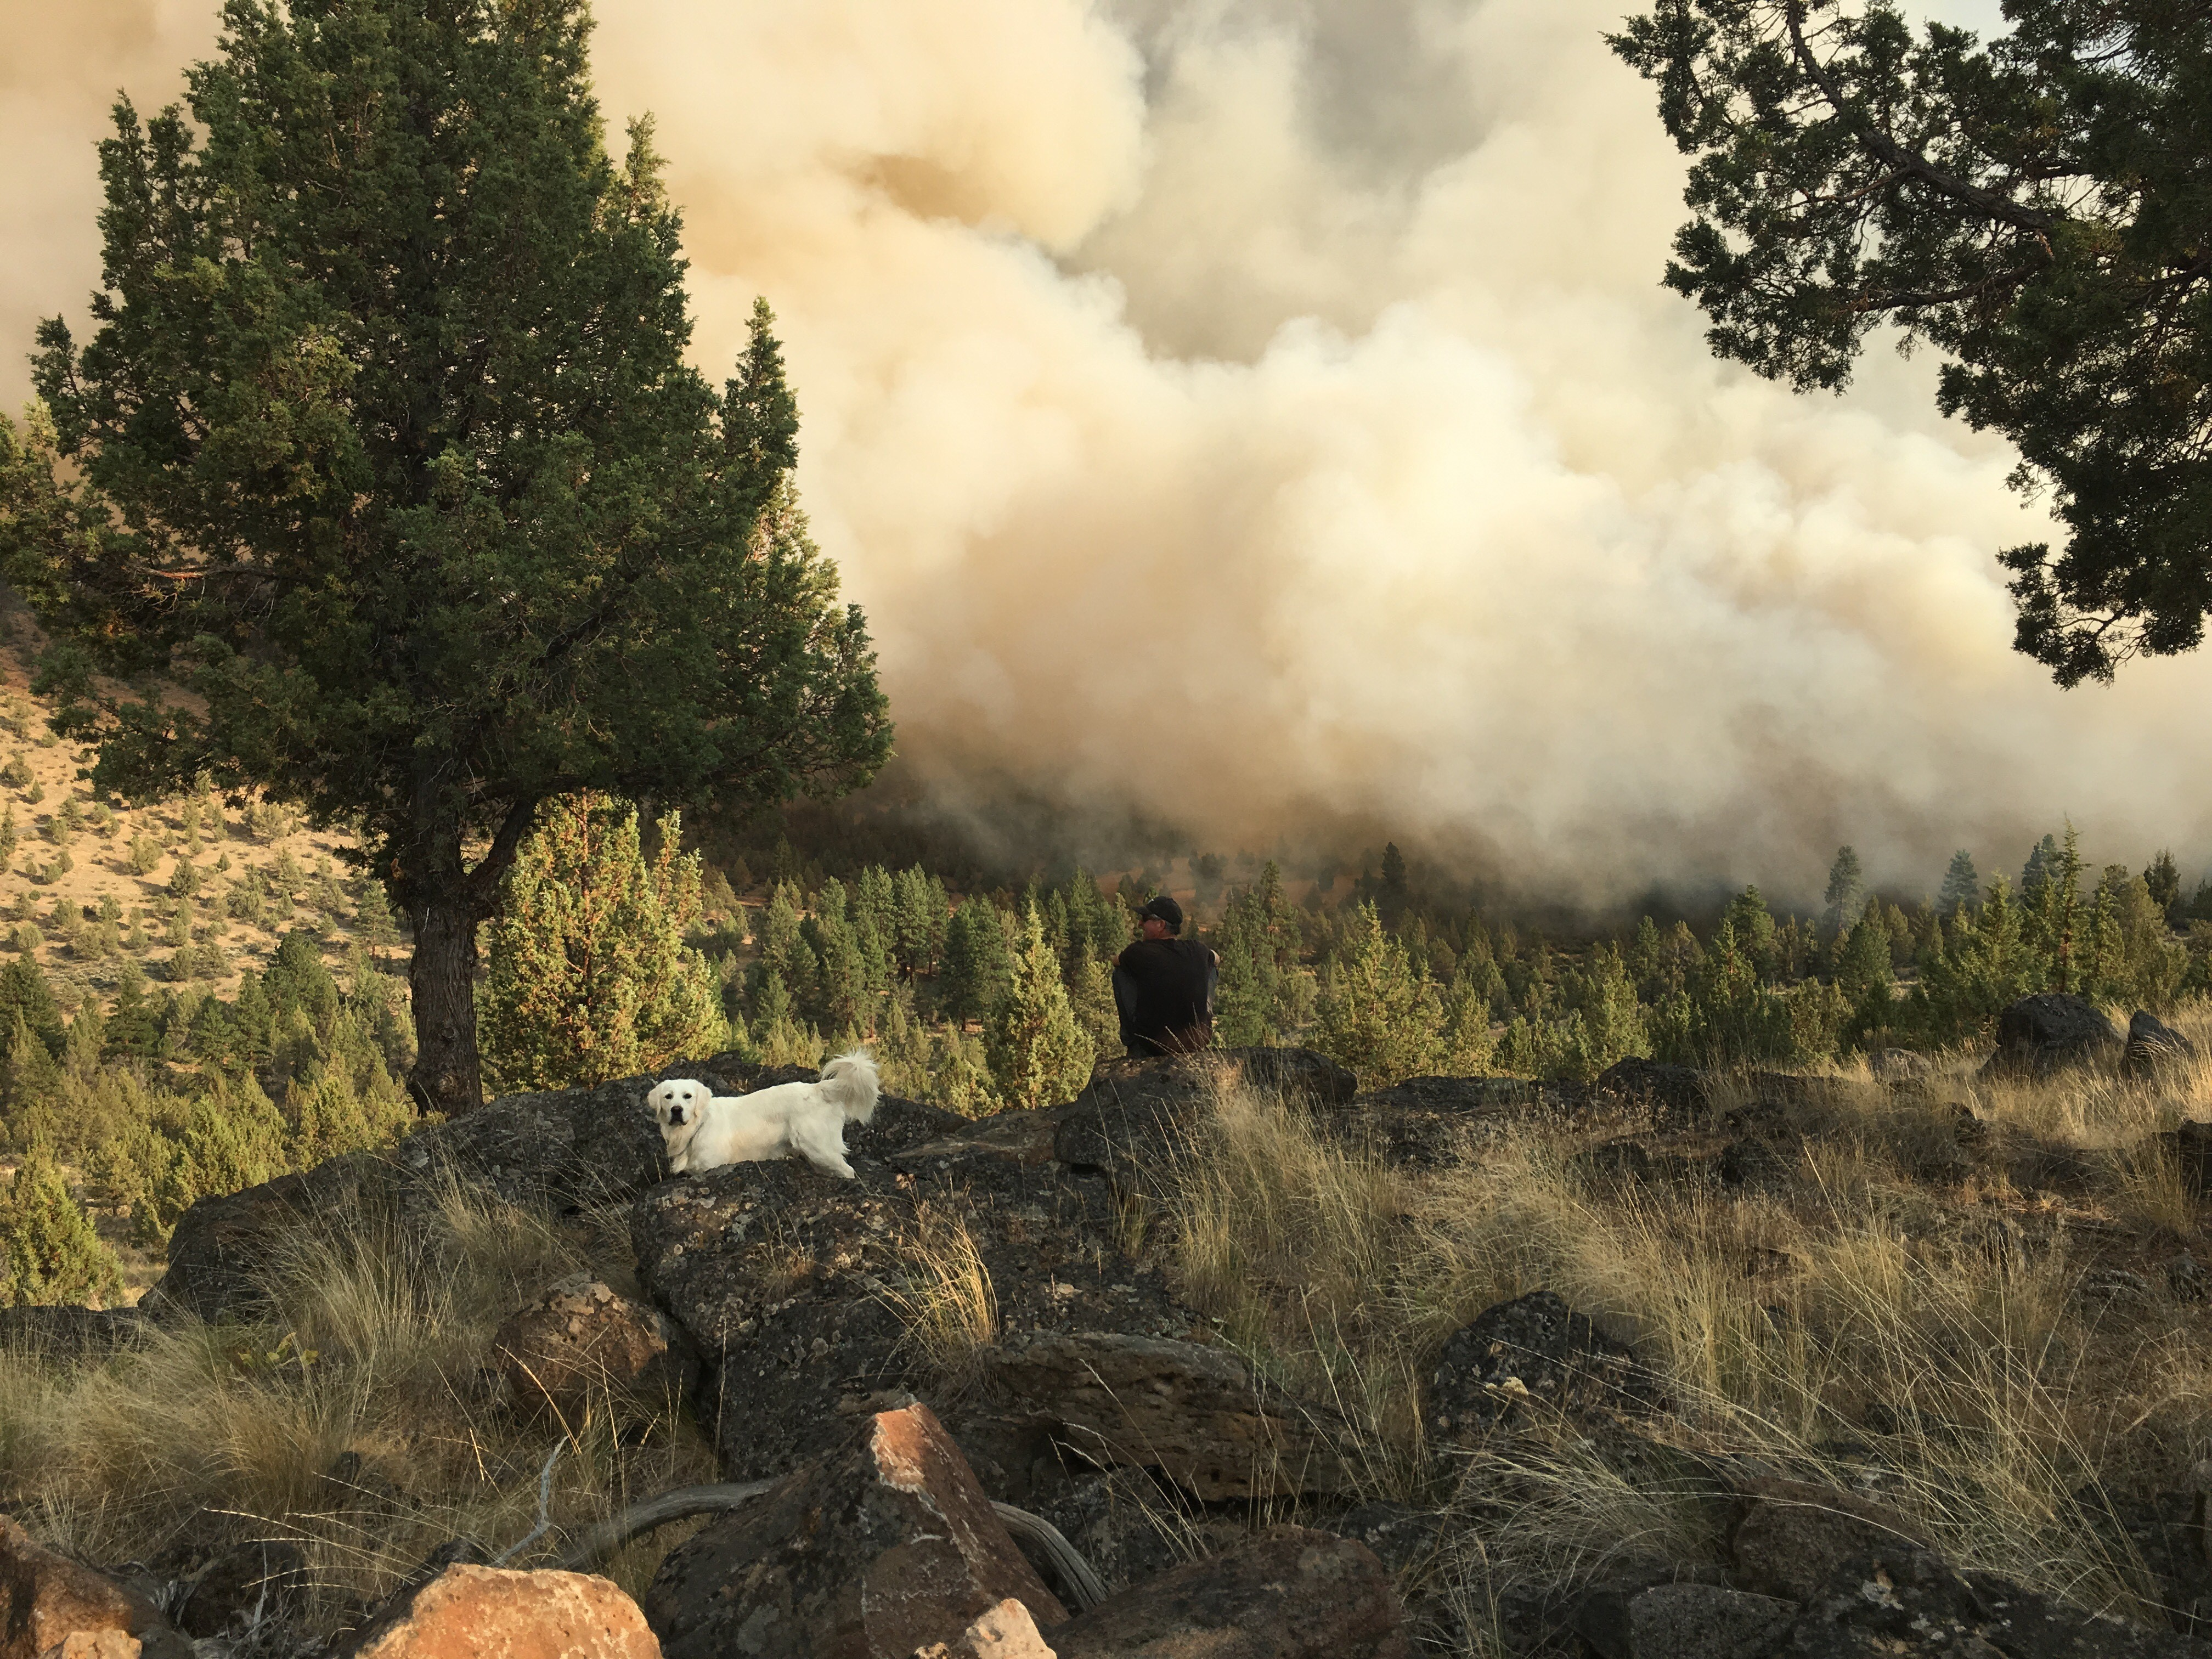 Graham Fire photo from Darren Verbout